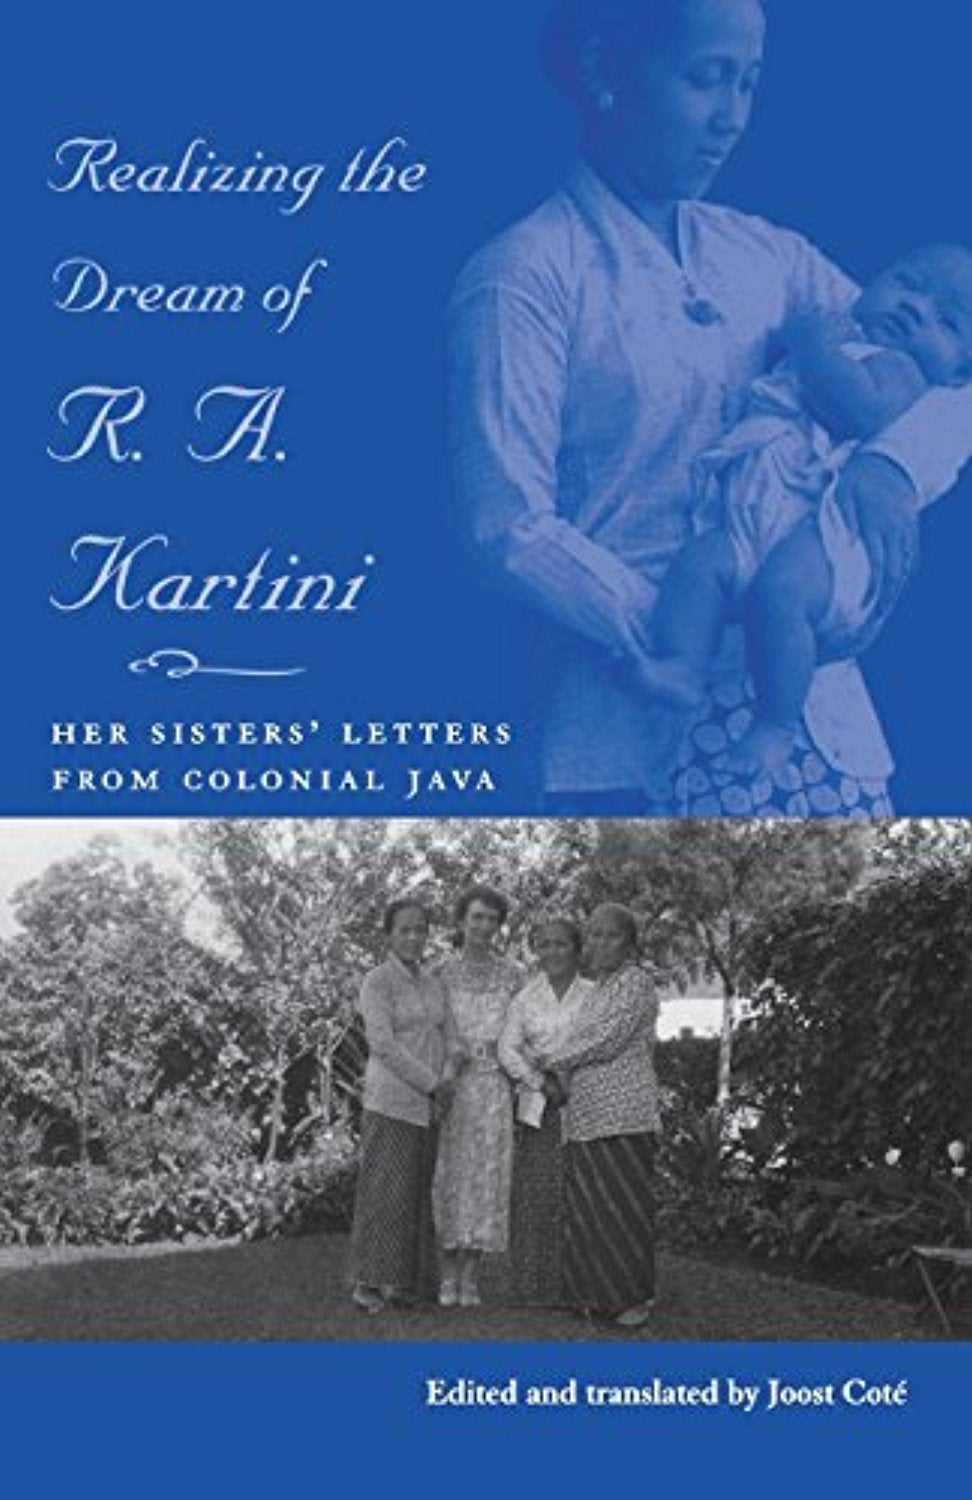 Realizing the Dream of R. A. Kartini: Her Sister's Letters from Colonial Java (Ohio RIS Southeast Asia Series)